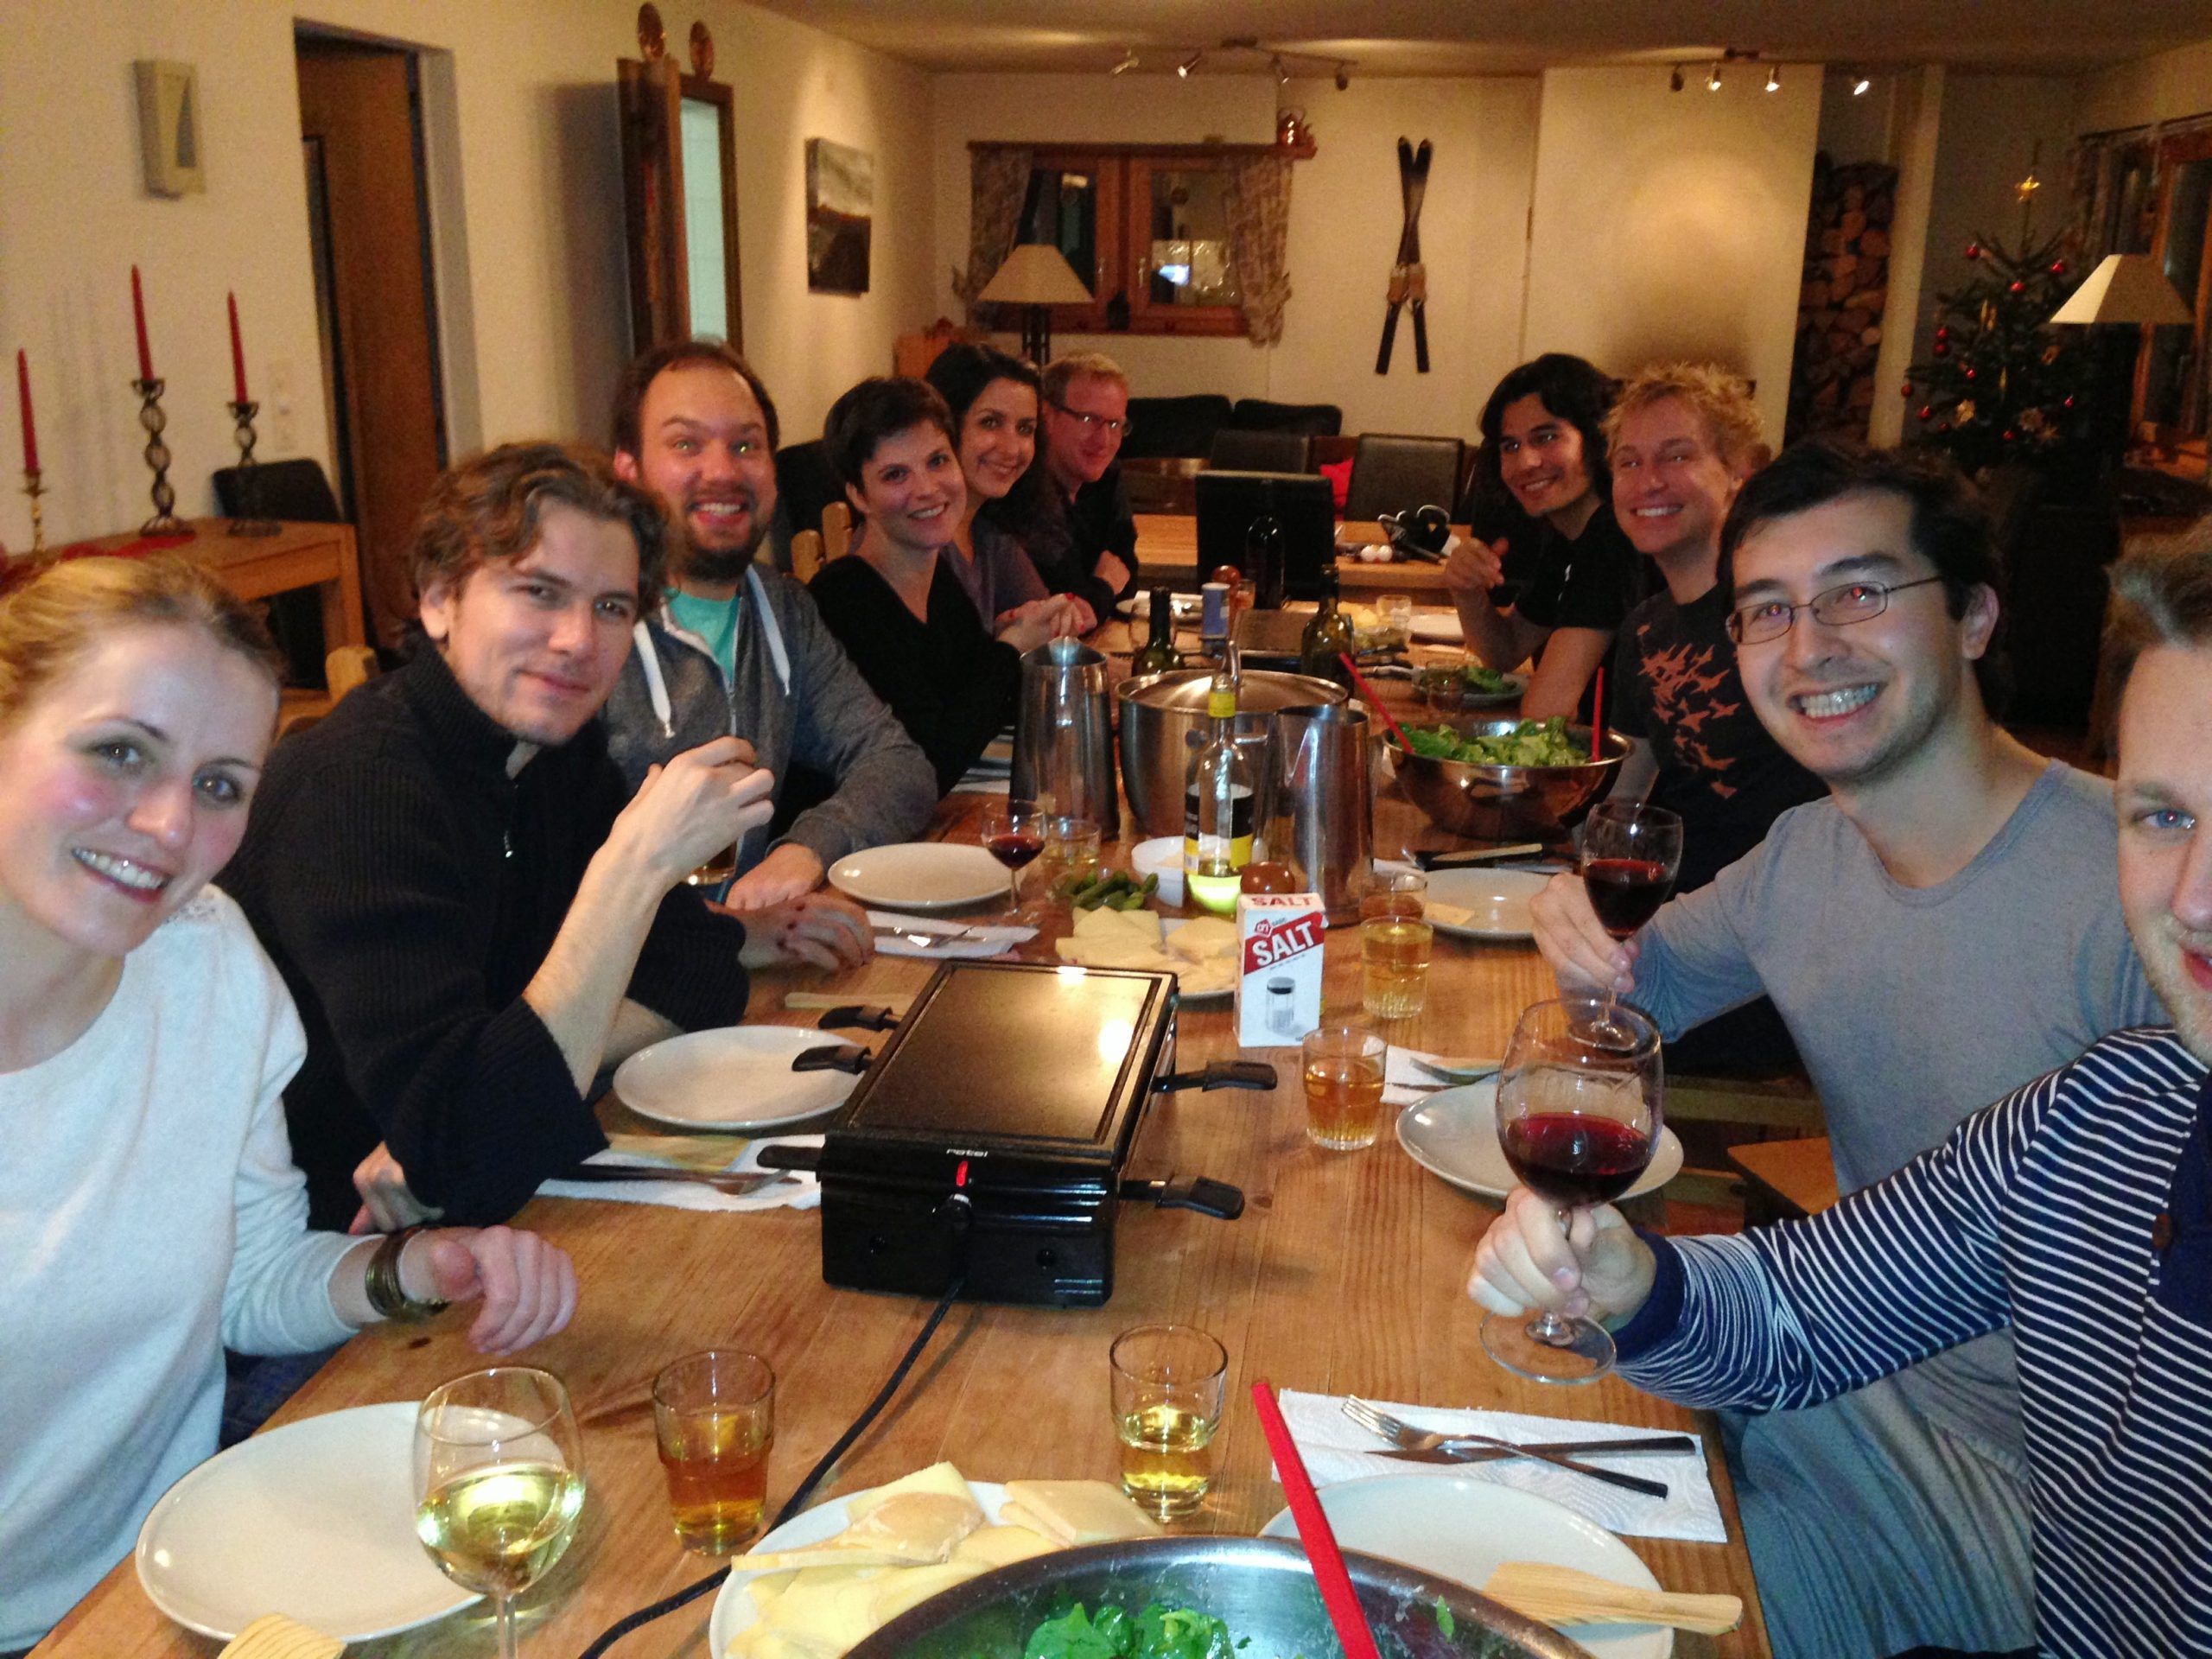 Group dines together spreading cheer around.